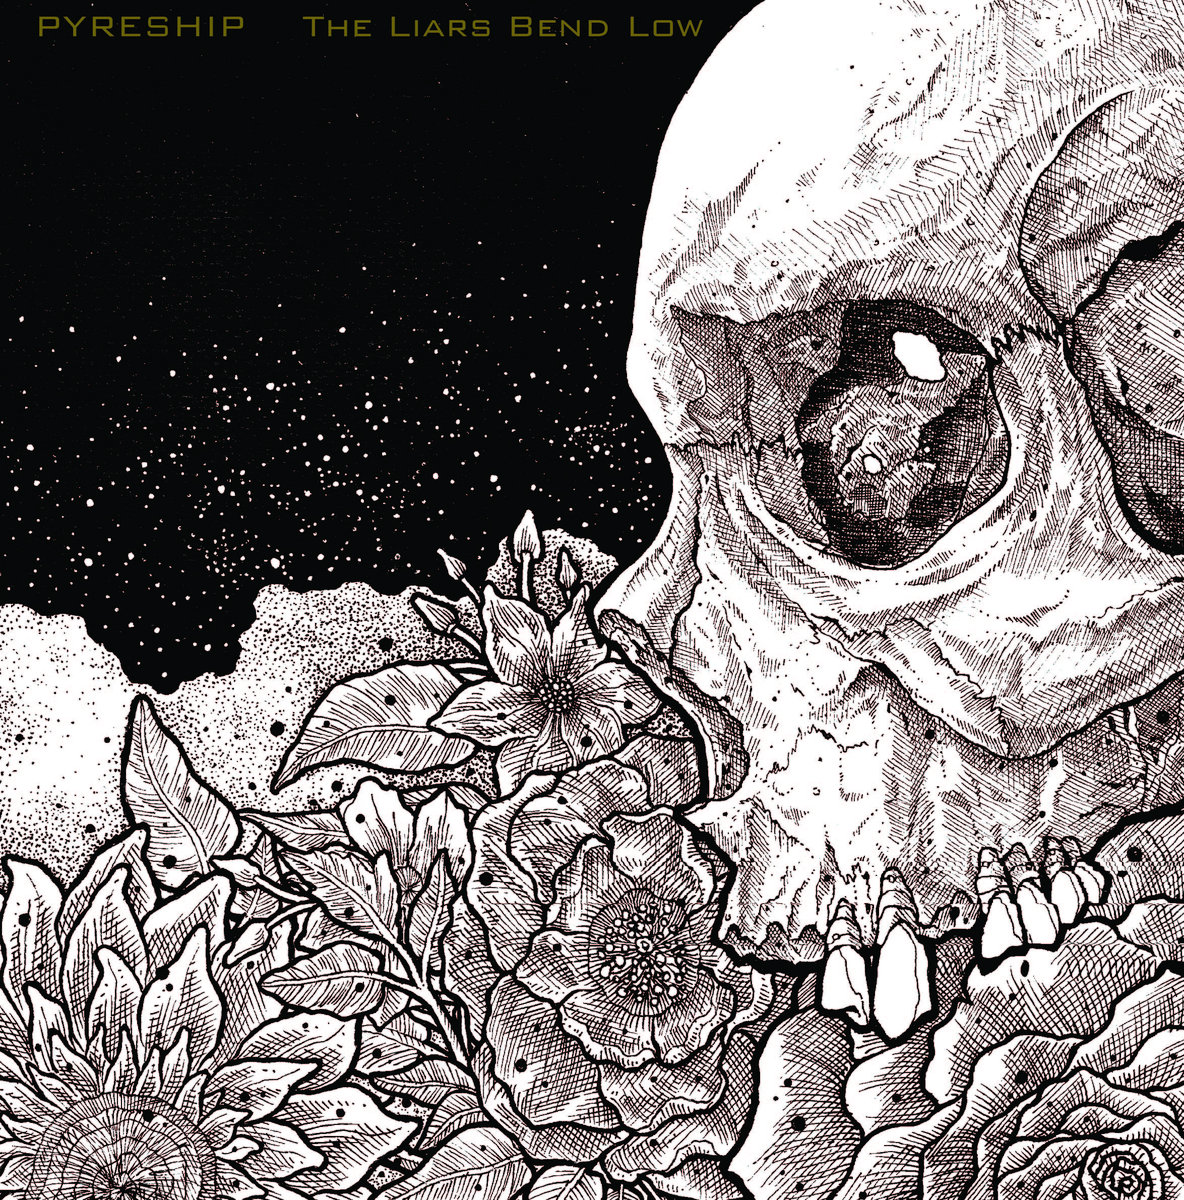 Outlaws Of The Sun Pyreship The Liars Bend Low Album